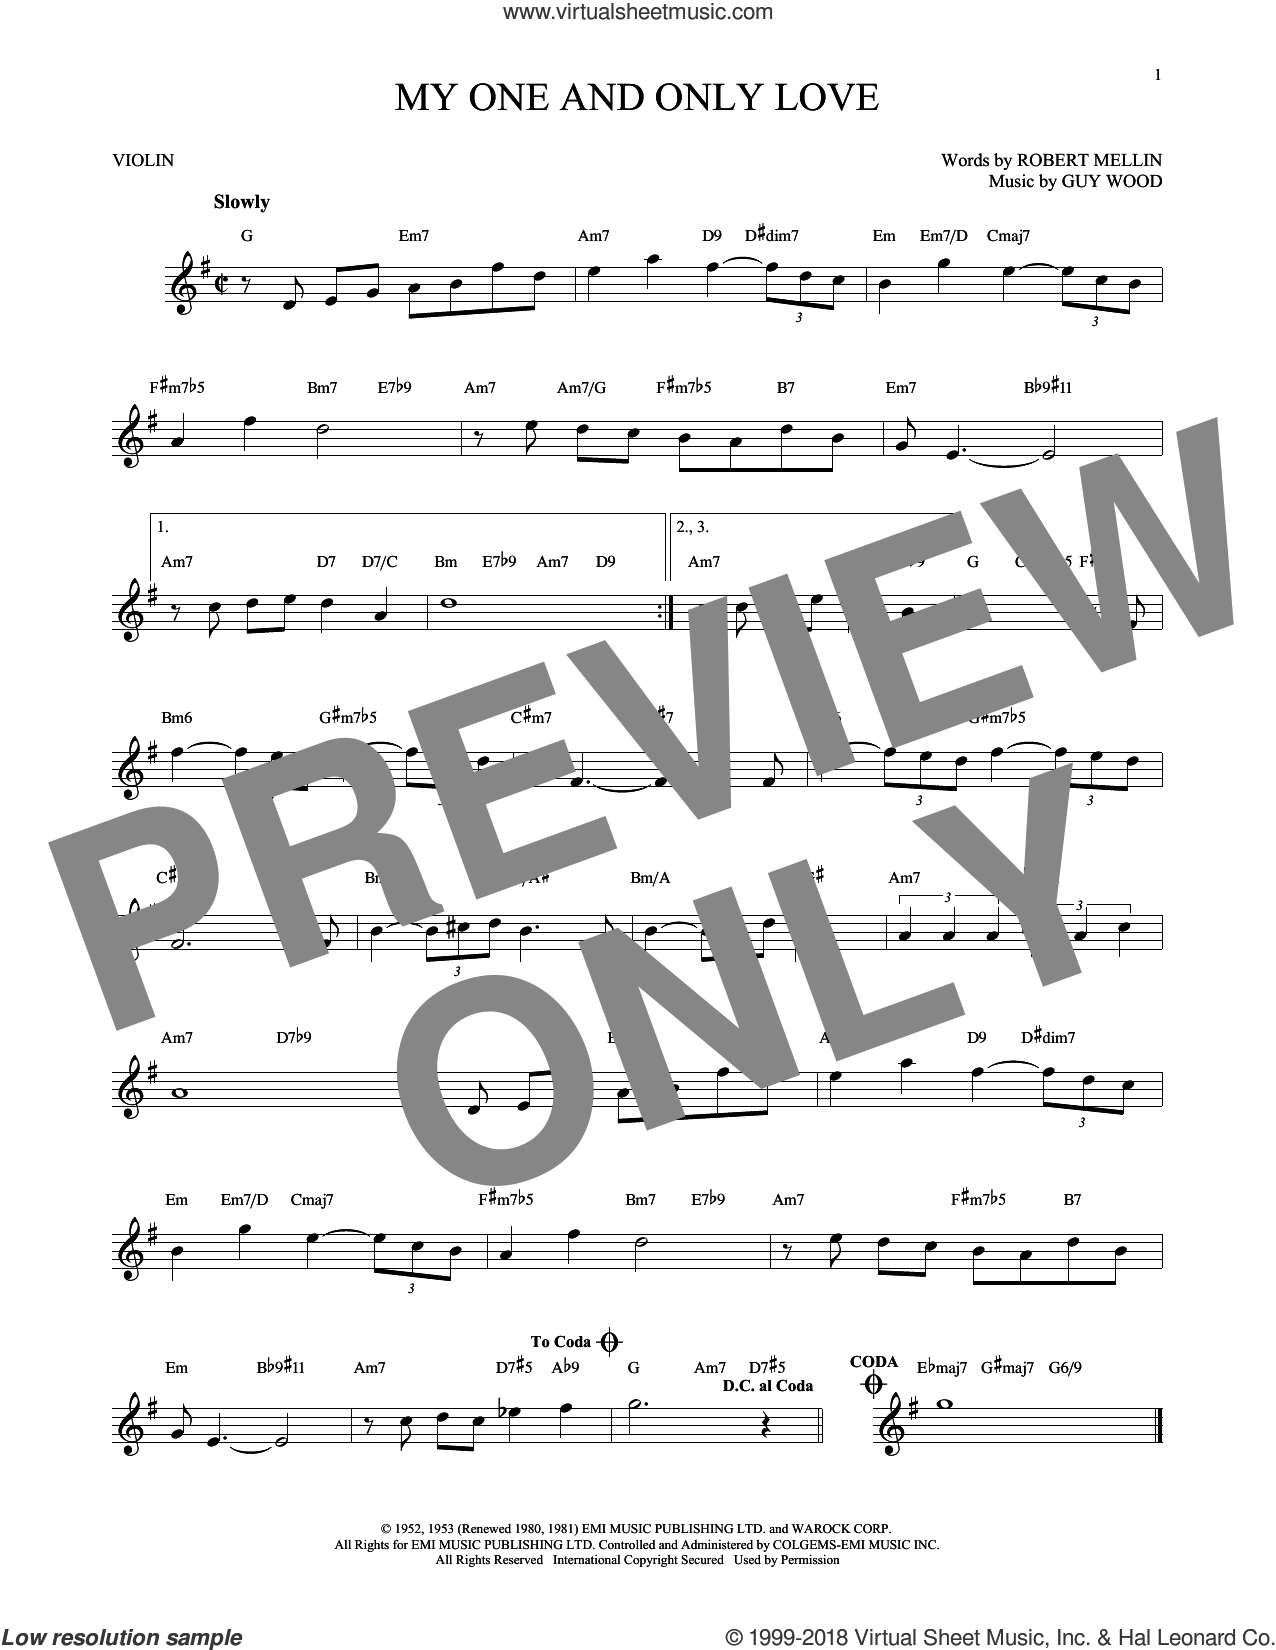 My One And Only Love sheet music for violin solo by Guy Wood